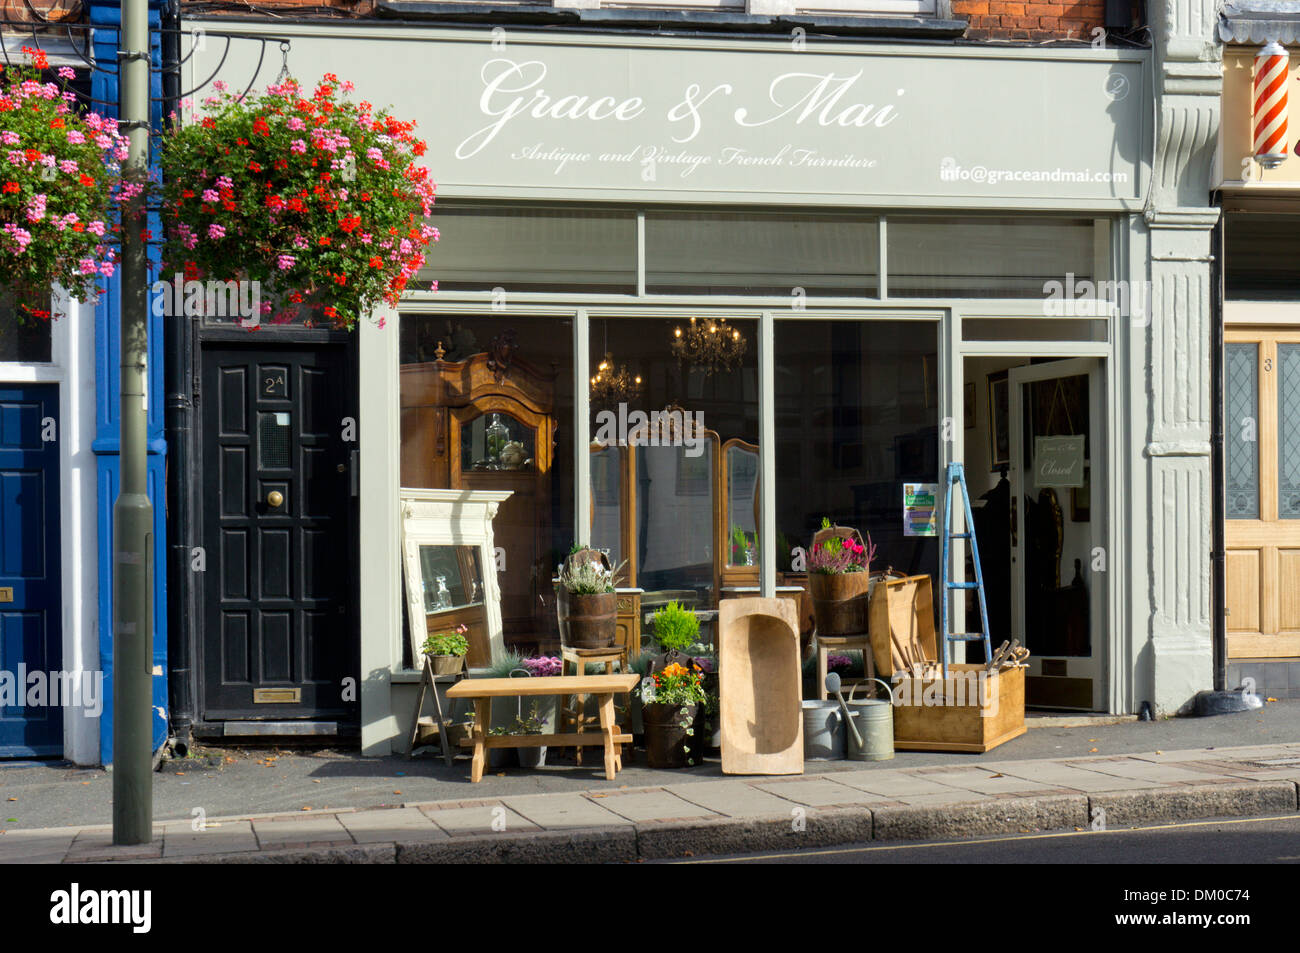 Furniture On The Pavement Outside The Shop Of Grace Mai Antique And Vintage French Furniture In Sundridge Park Kent Stock Photo Alamy